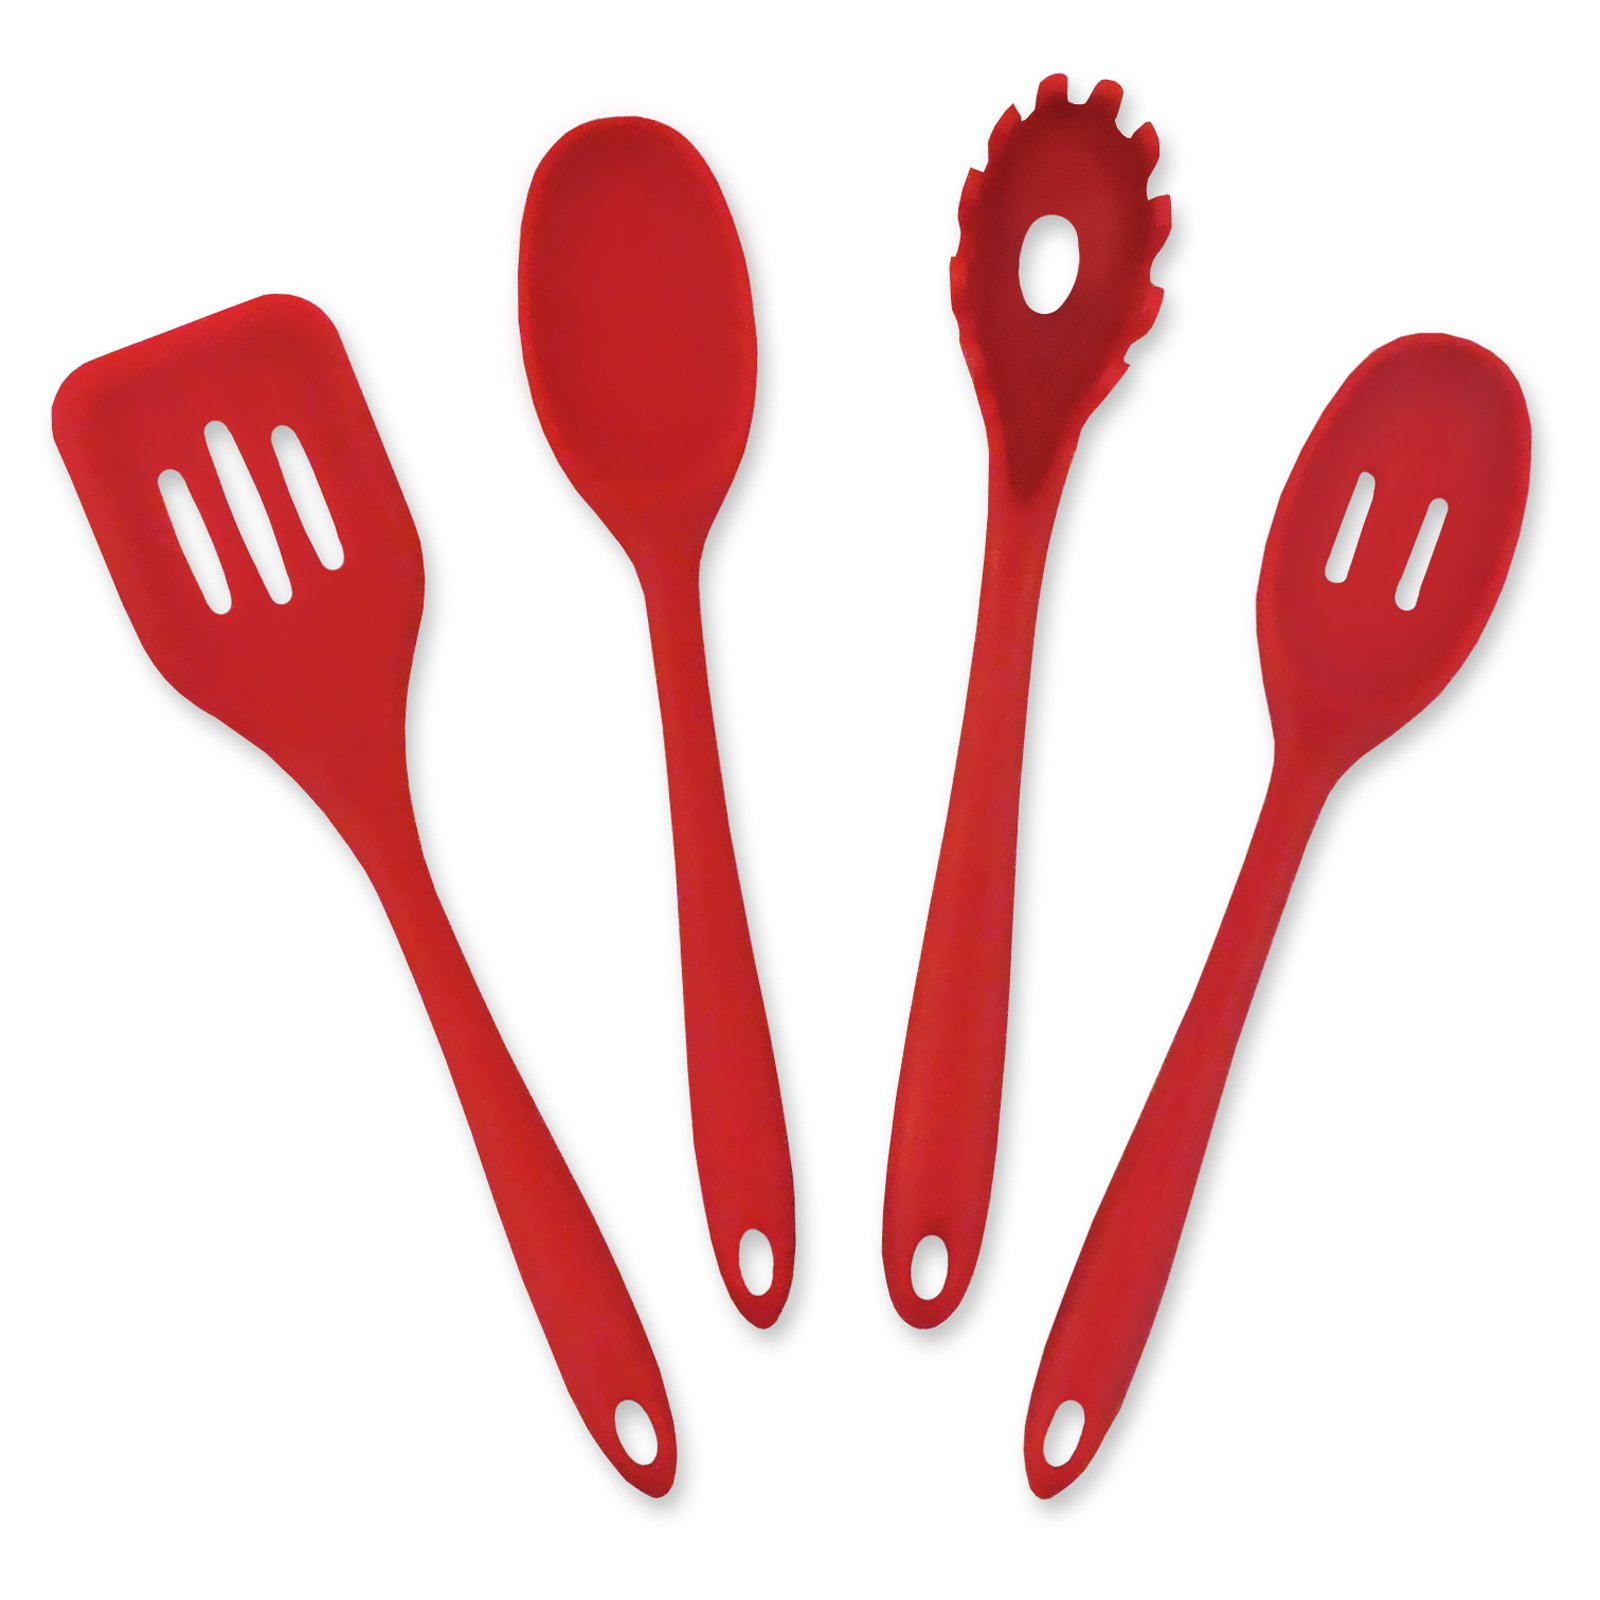 Red 4 piece kitchen cooking set - includes 1 slotted turner, 1 slotted spoon, 1 spoon and one spaghetti spoon.